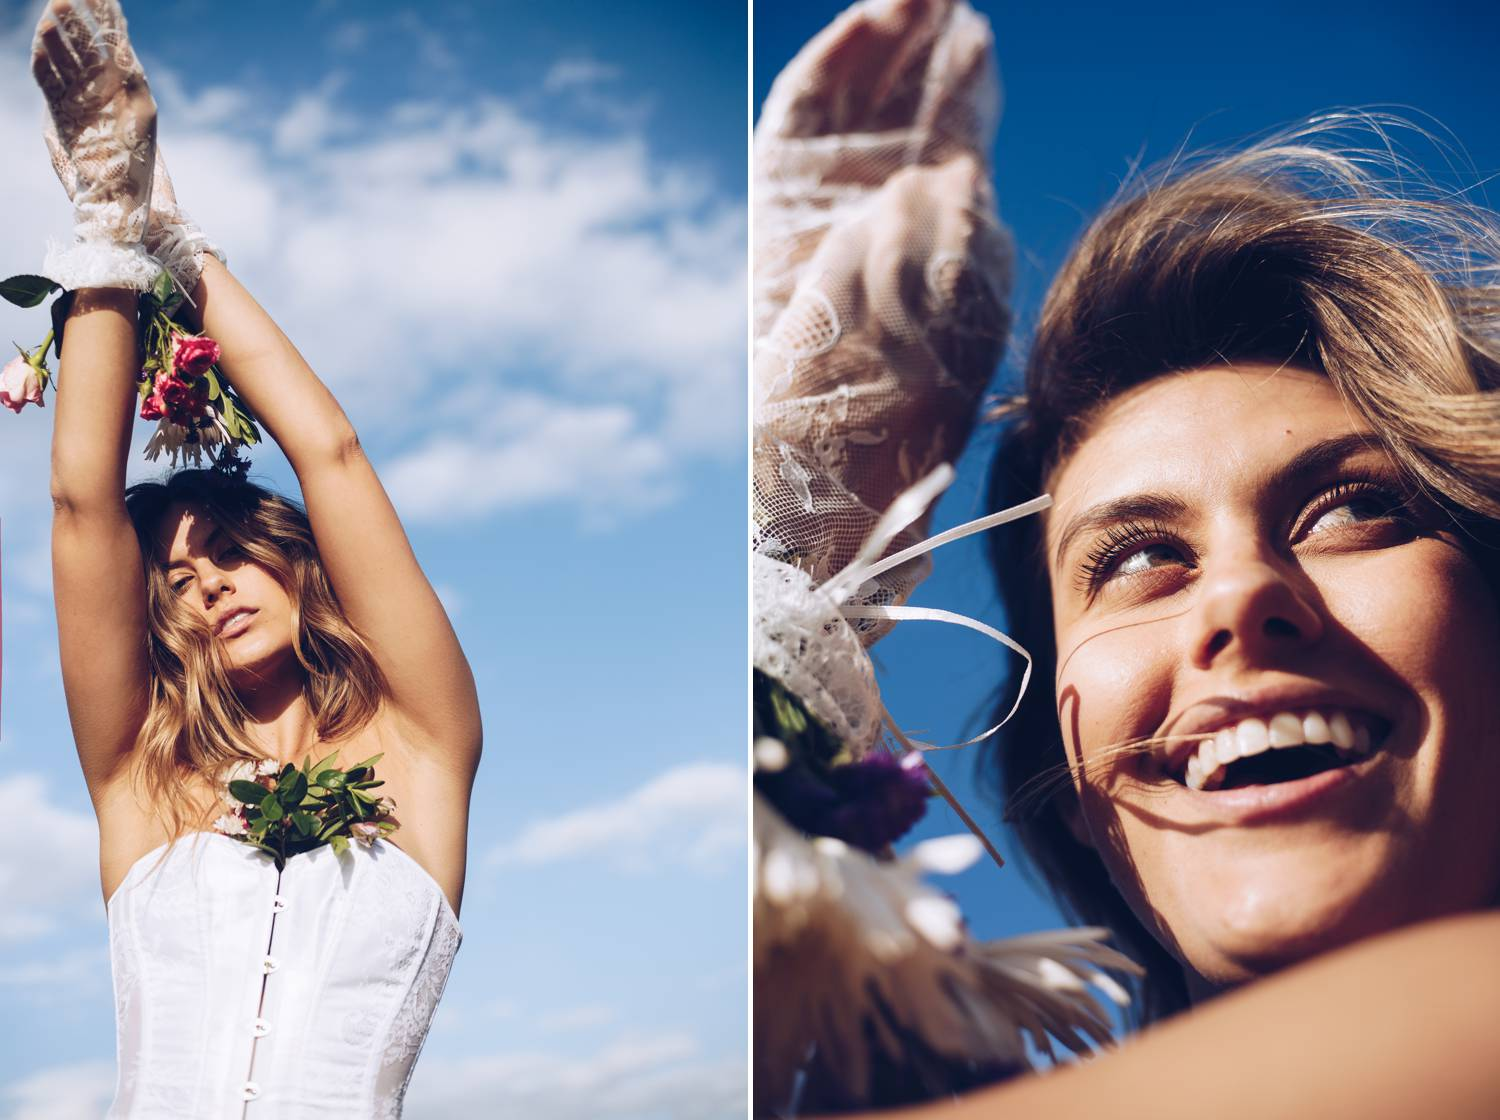 A smiling model poses against a bright blue sky for beauty photography